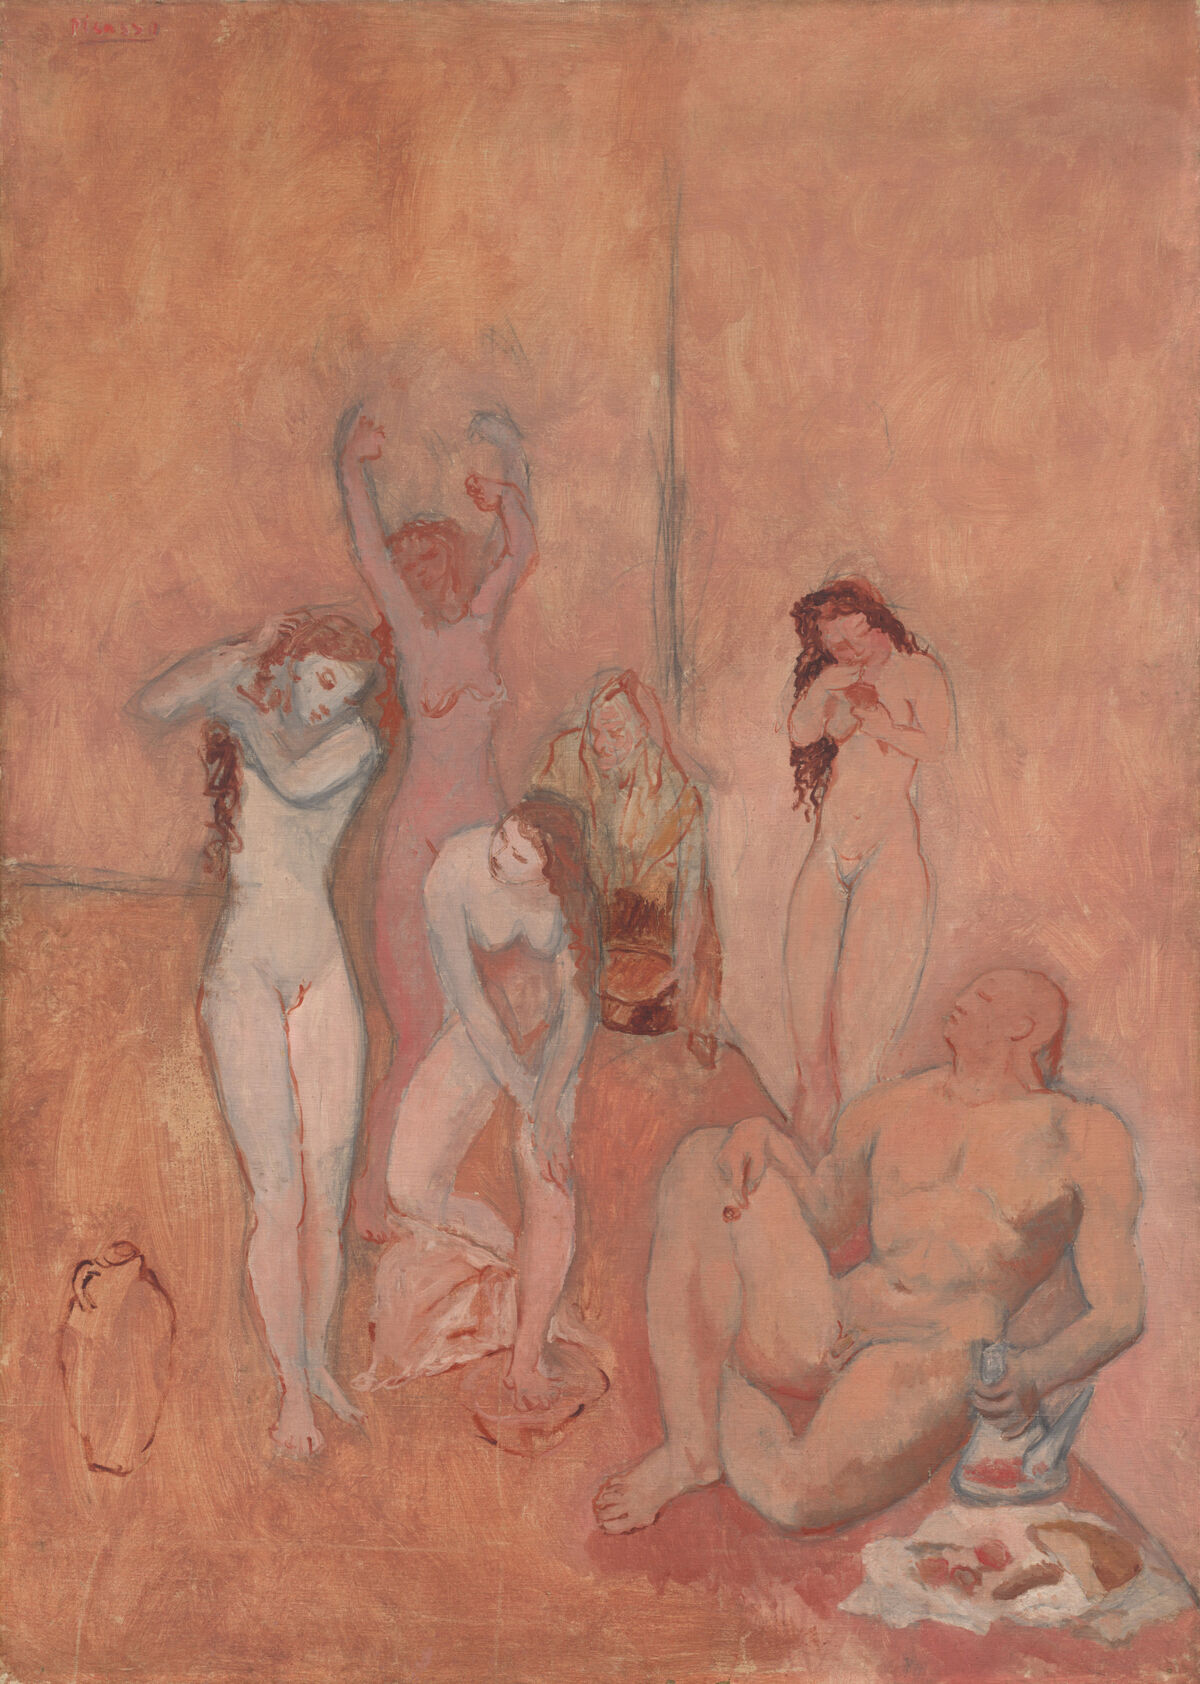 Pablo Picasso, The Harem, 1906. The Cleveland Museum of Art, Bequest of Leonard C. Hanna, Jr. © Estate of Pablo Picasso / Artists Rights Society (ARS), New York.